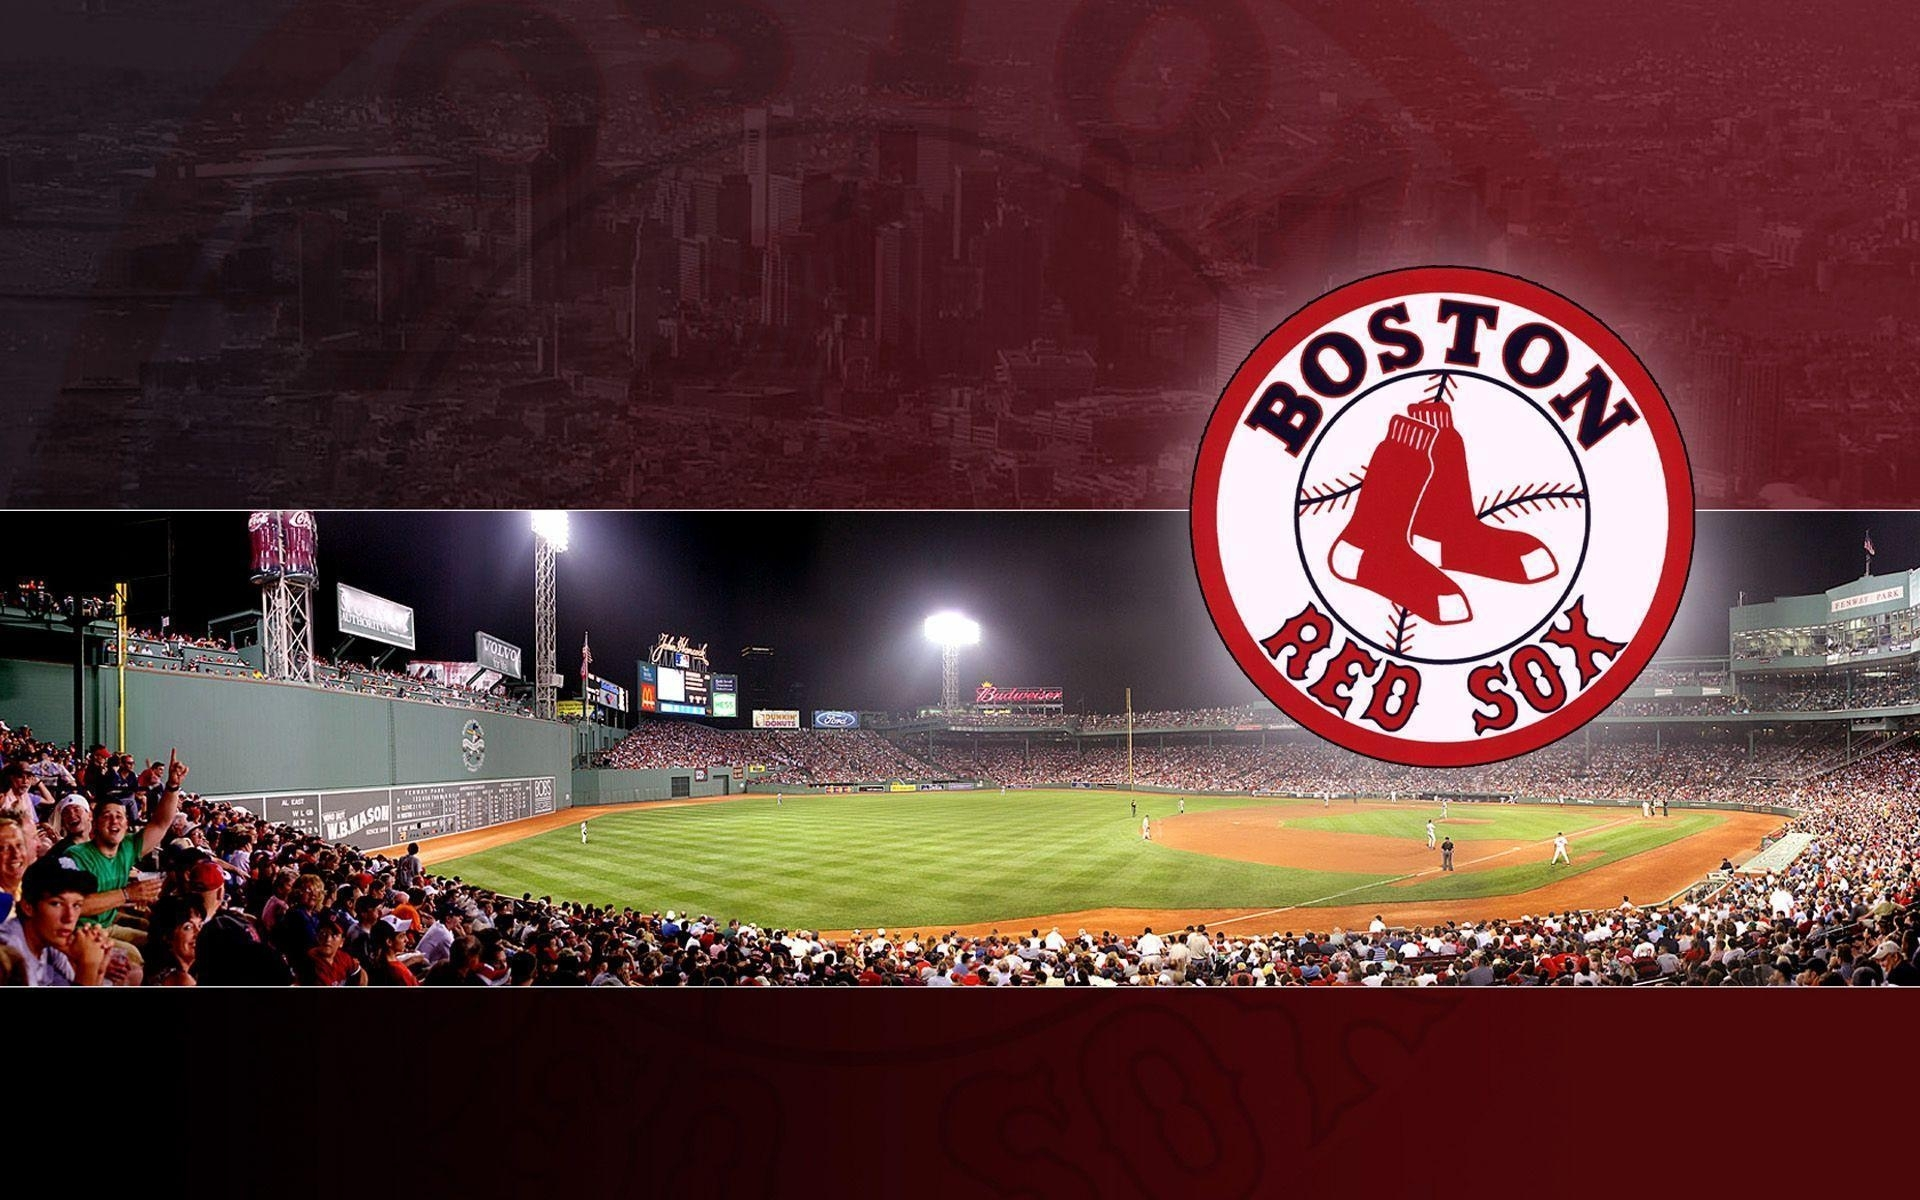 boston red sox 2017 wallpapers - wallpaper cave